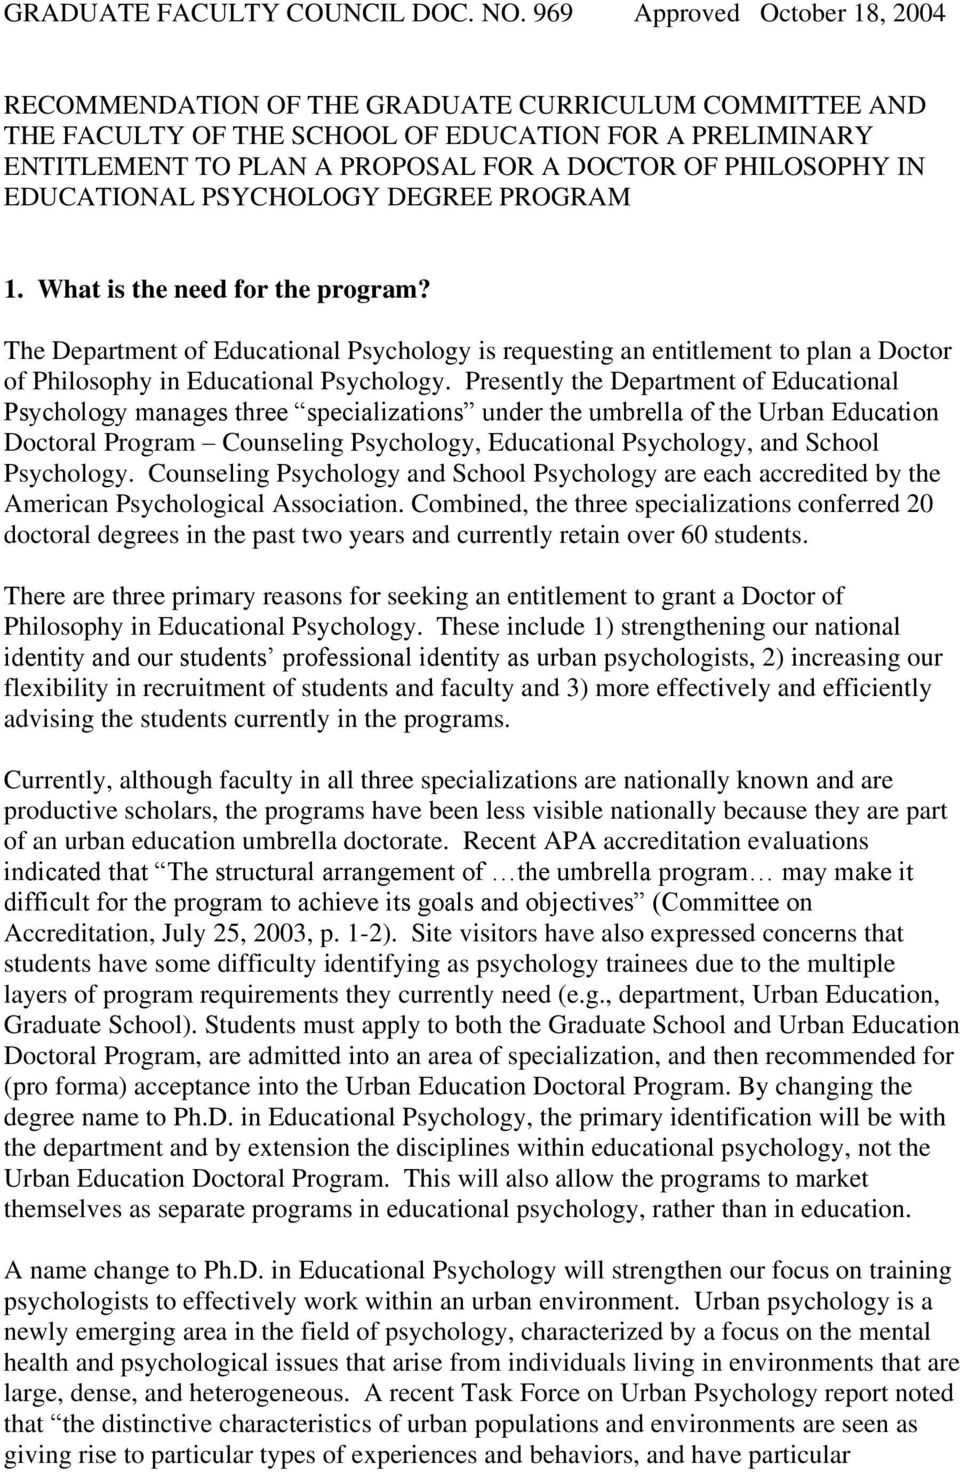 PHILOSOPHY IN EDUCATIONAL PSYCHOLOGY DEGREE PROGRAM 1. What is the need for the program?